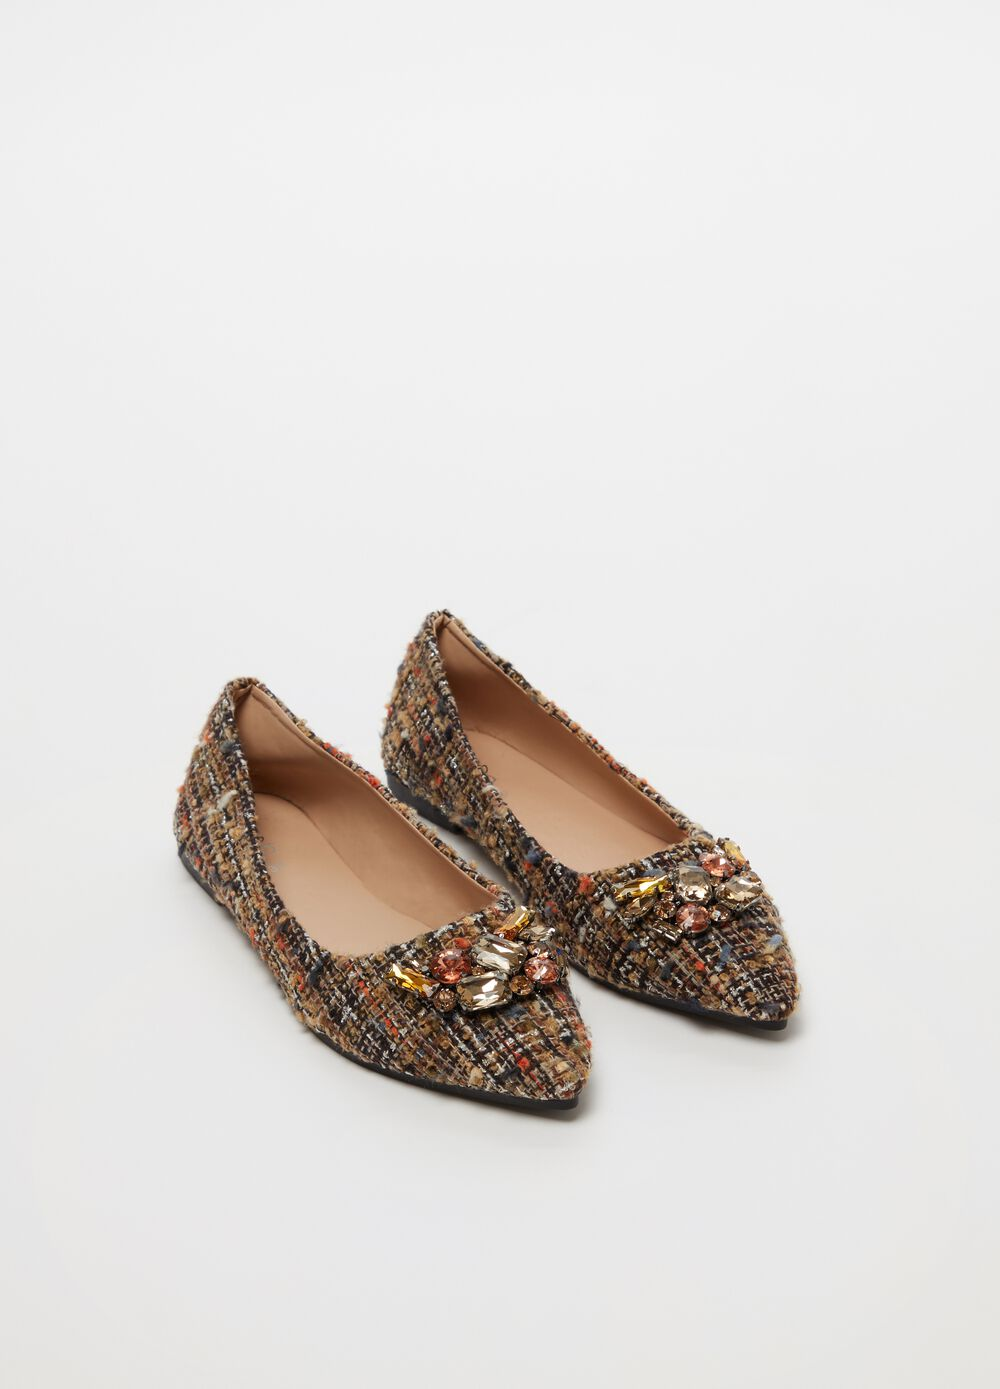 Pointed ballerina flats with stones and flat heel